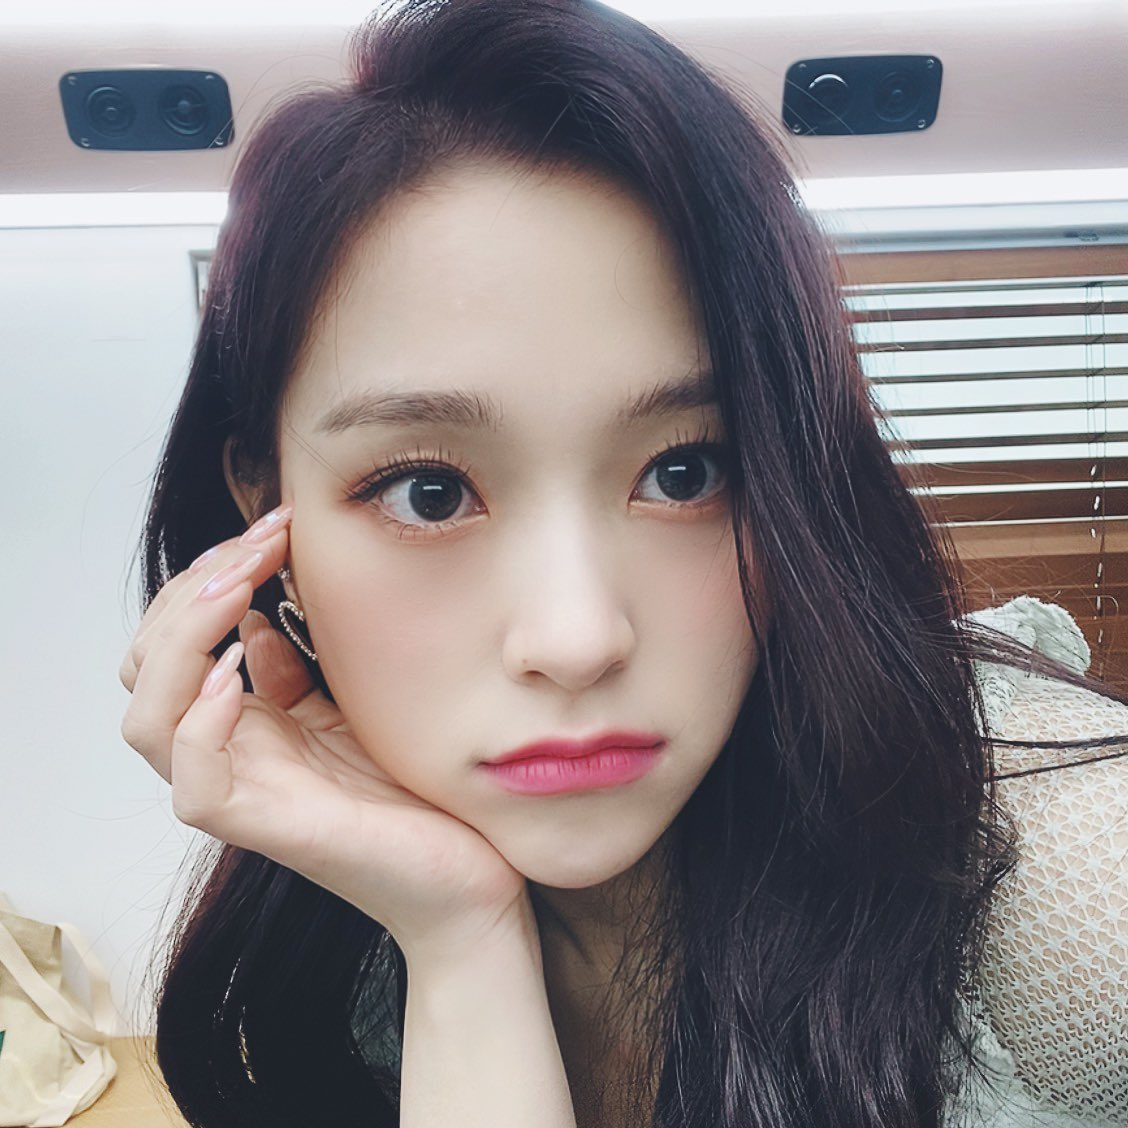 Lee Gahyeon: prettiest girlpic.twitter.com/hqsFcebOj2